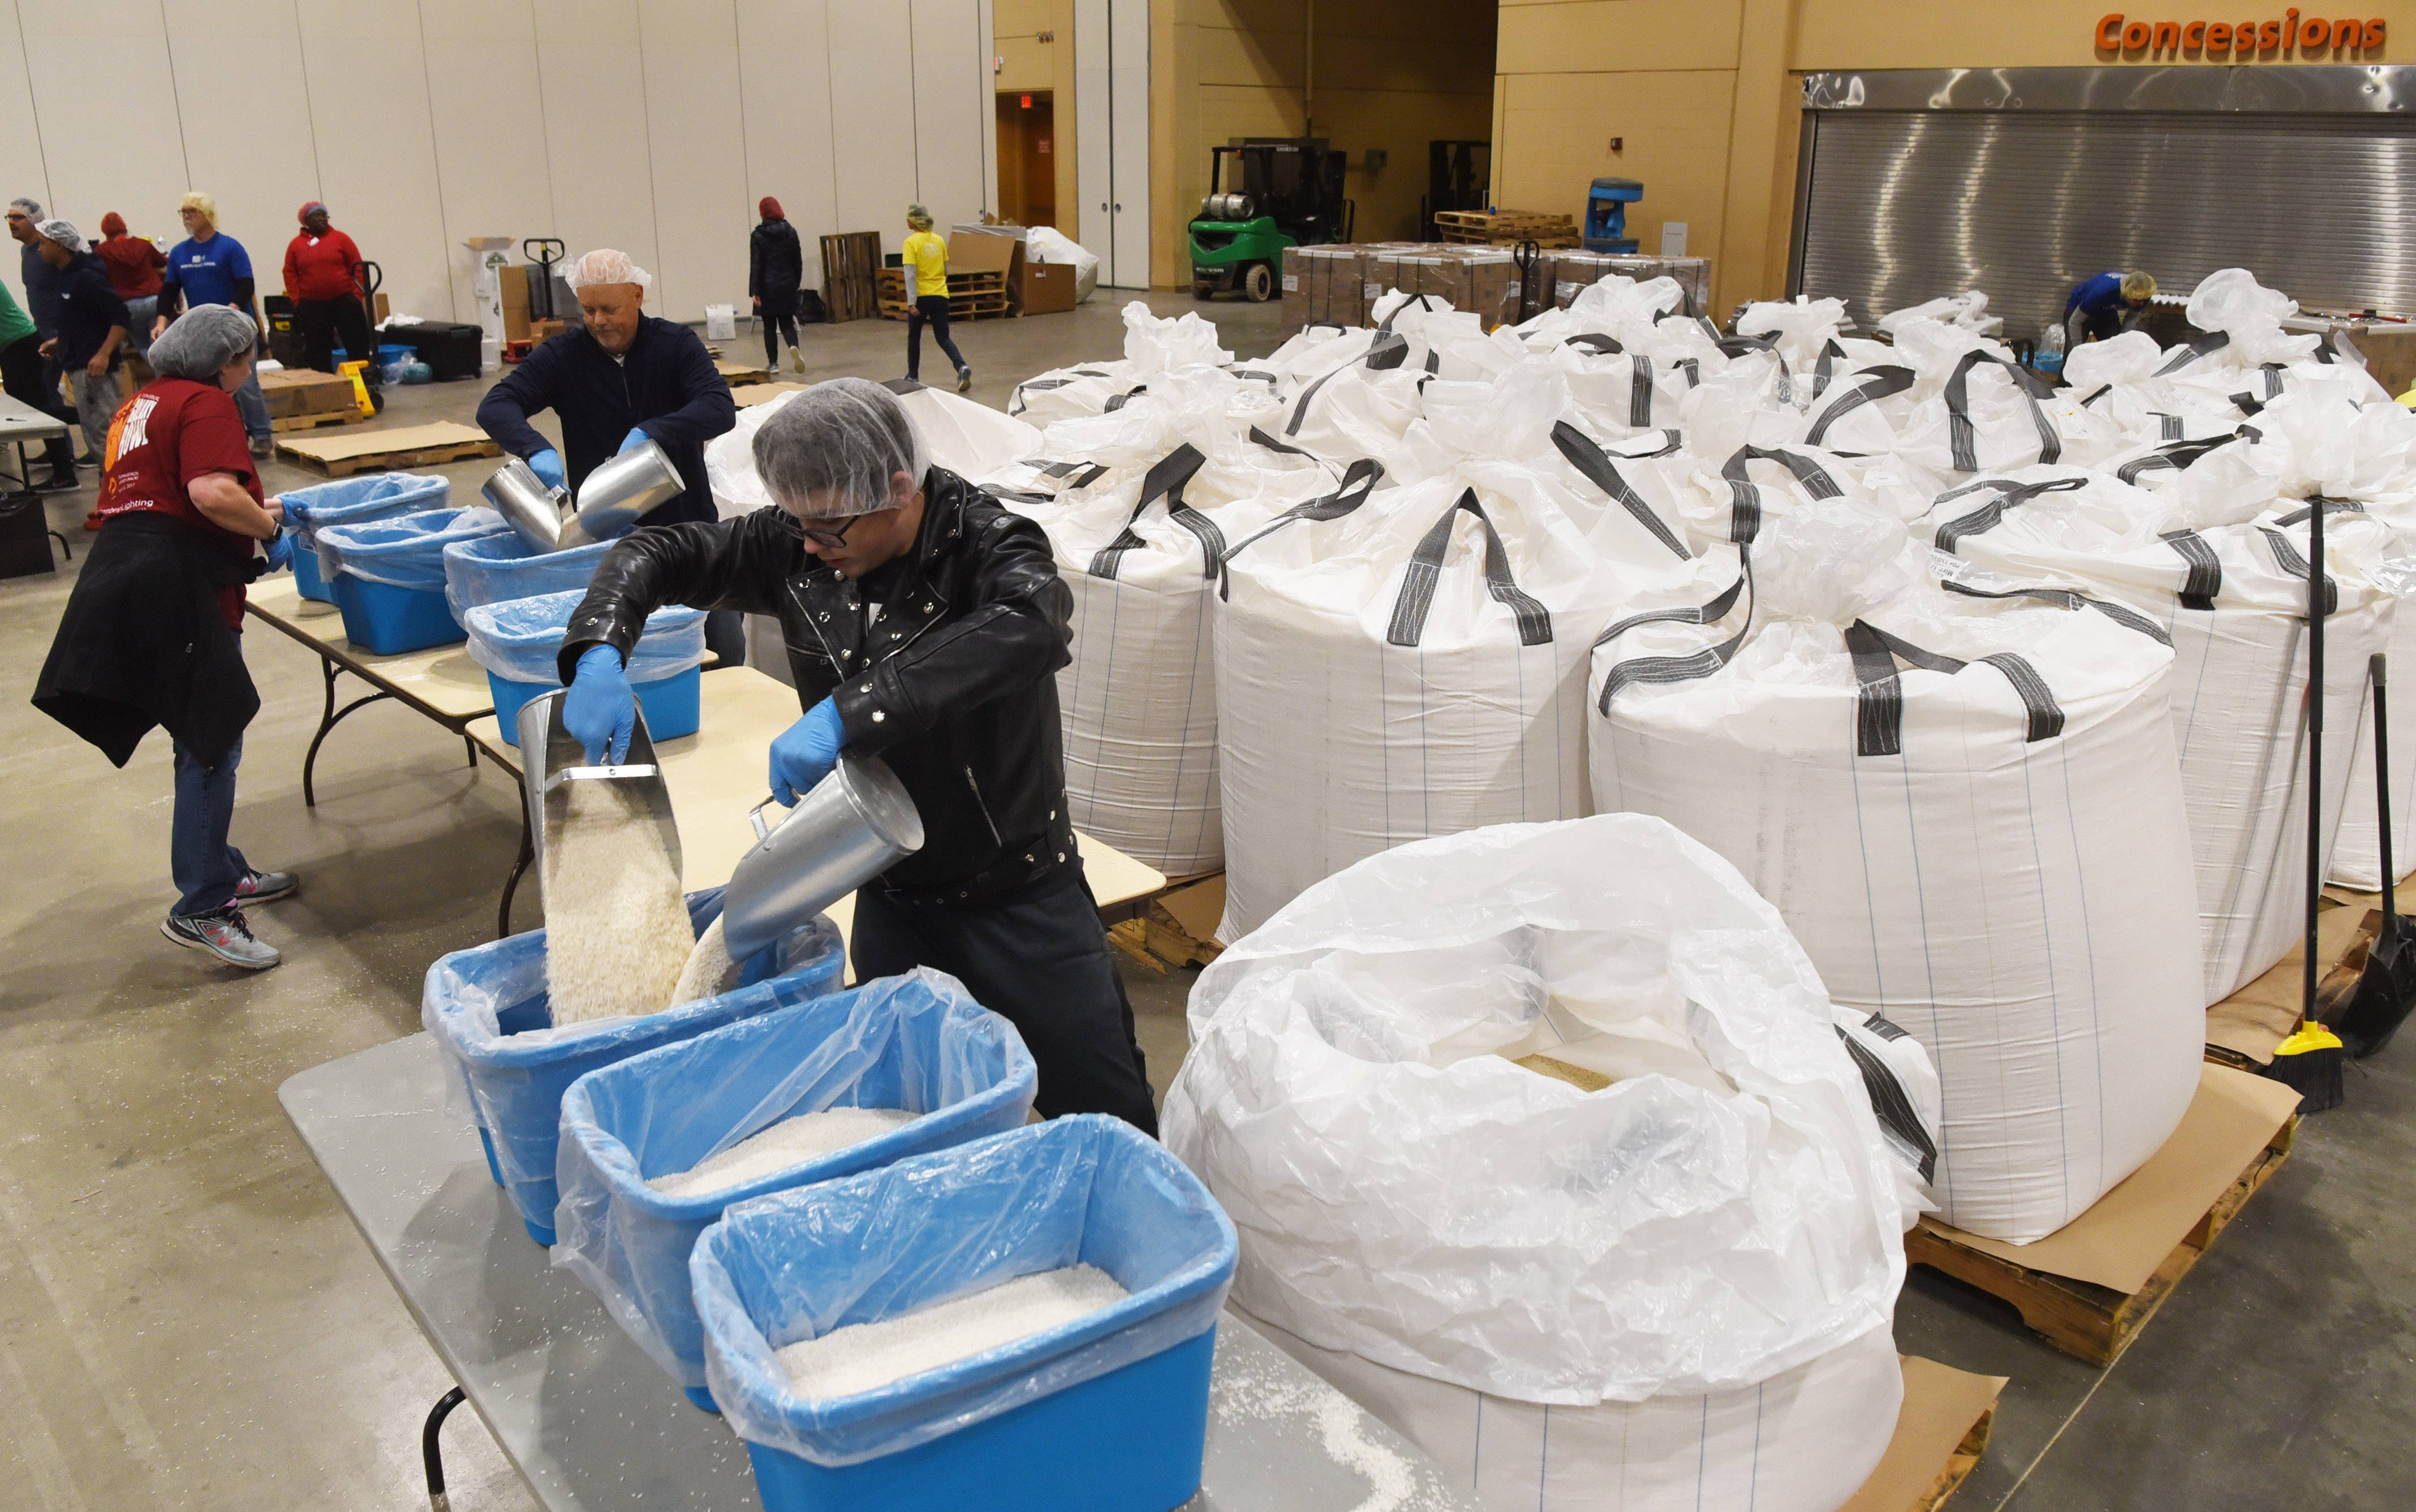 Ian Behnke of Elk Grove Village transfers rice from one-ton bags into bins Sunday during Feed My Starving Children's Hope Filled Holiday MobilePack event at the Renaissance Schaumburg Convention Center.